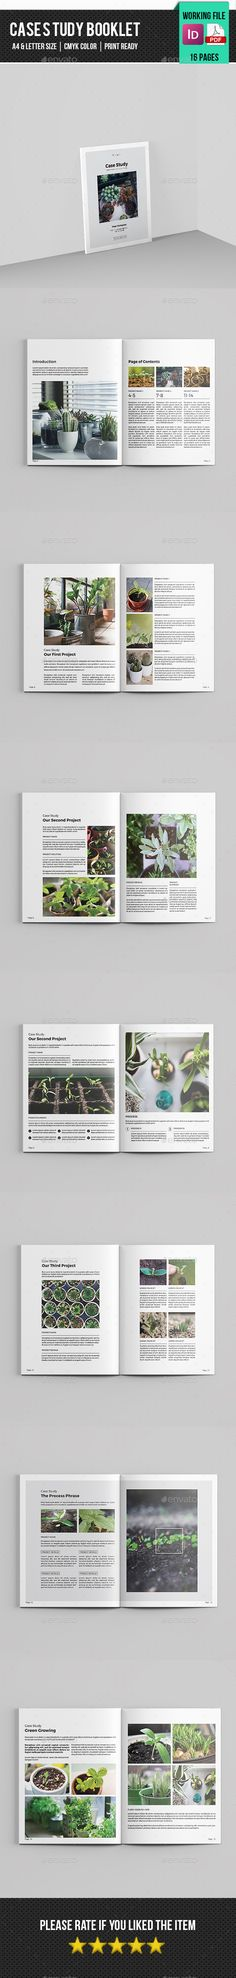 Case Study Booklet Design| Indesign Template - Corporate Brochure ...